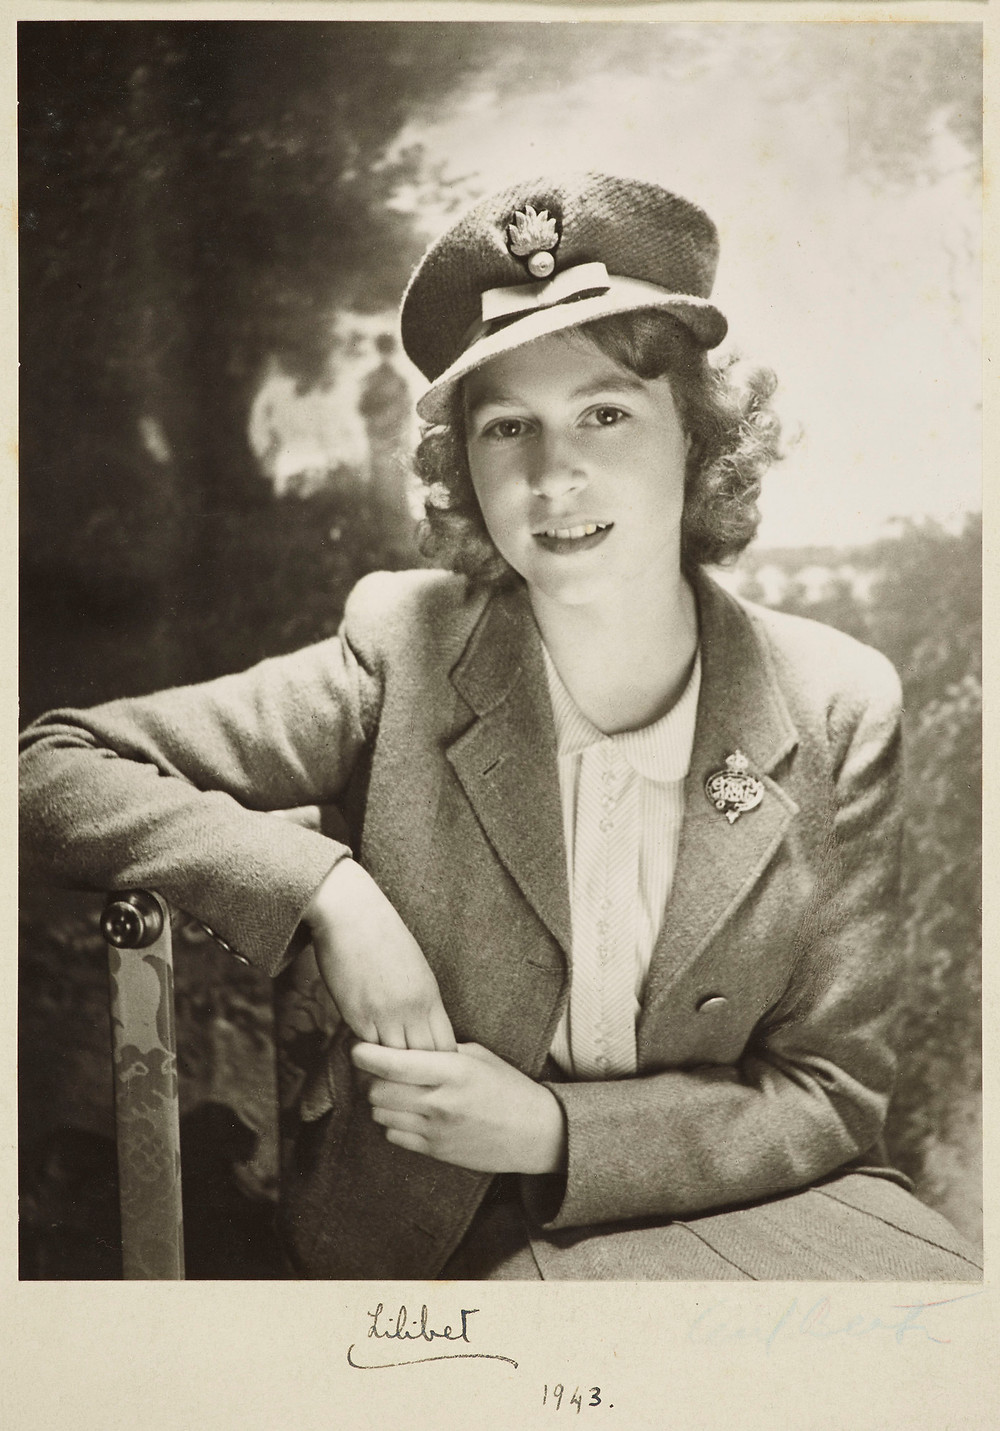 Princess Elizabeth circa 1943, by Cecil Beaton at the Royal Collection Trust/(c) Her Majesty Queen Elizabeth II 2018